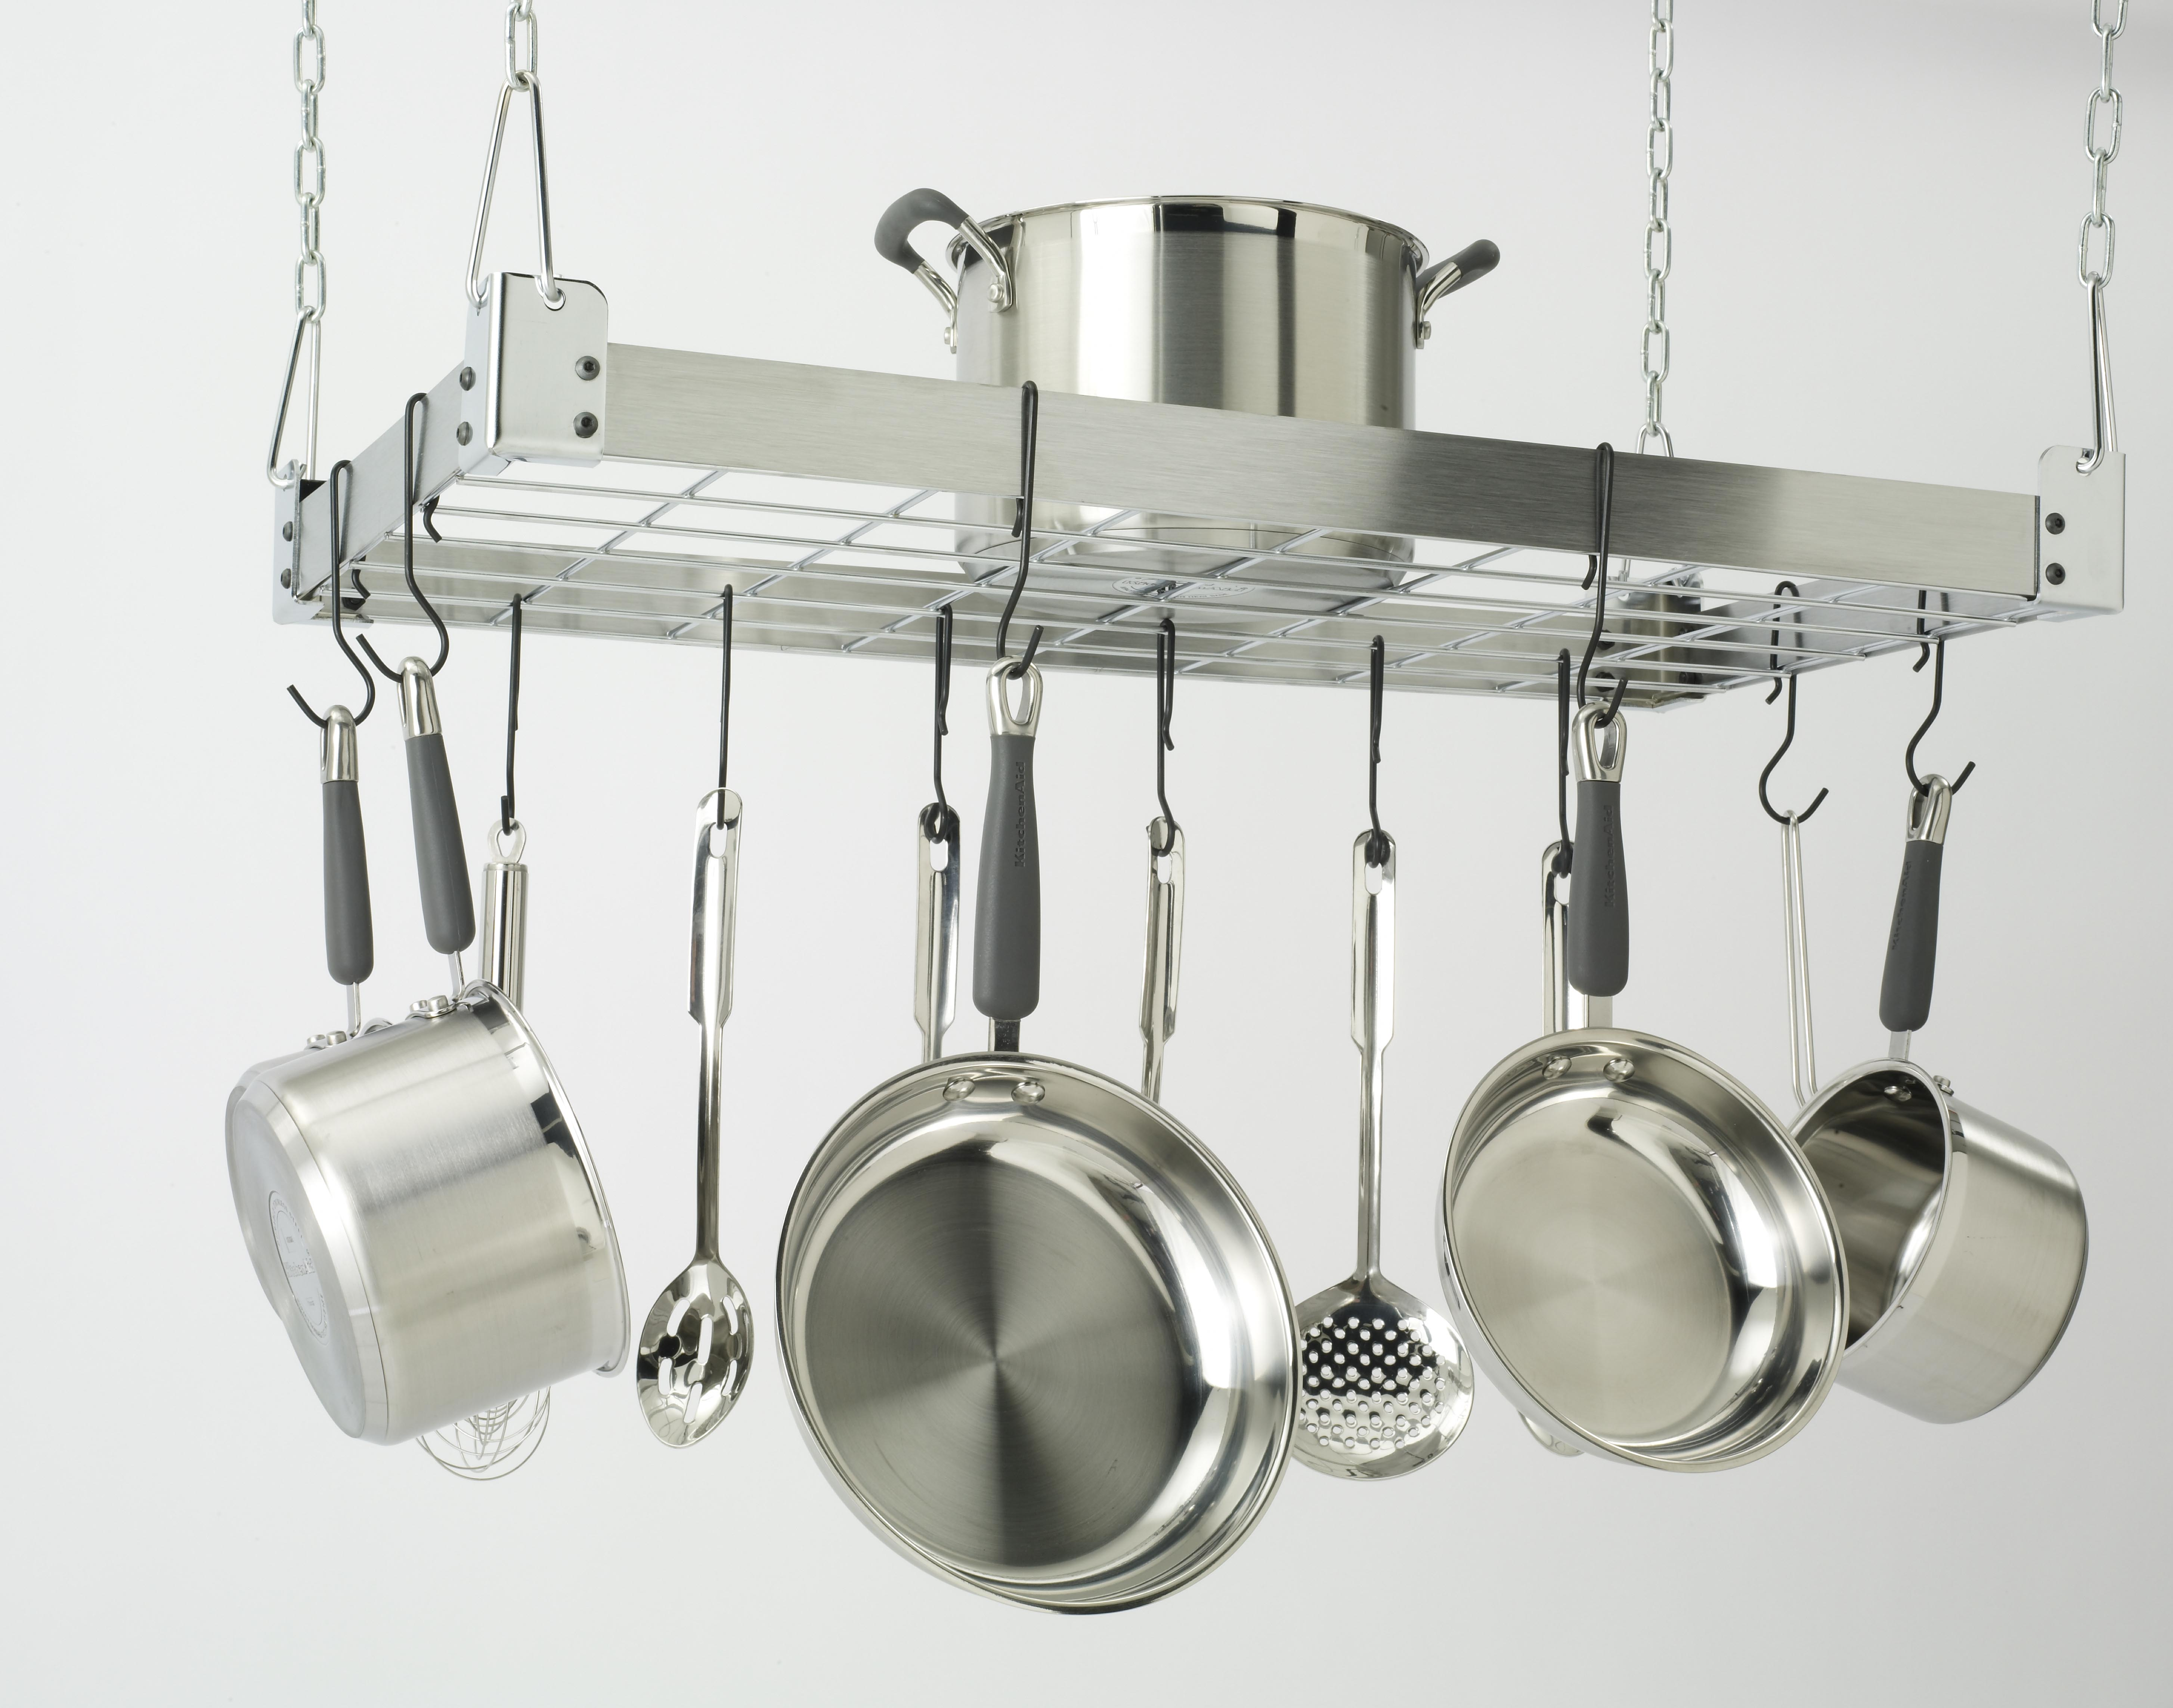 Stainless Steel Designer Kitchen Pot Rack by Jay Rinaldo